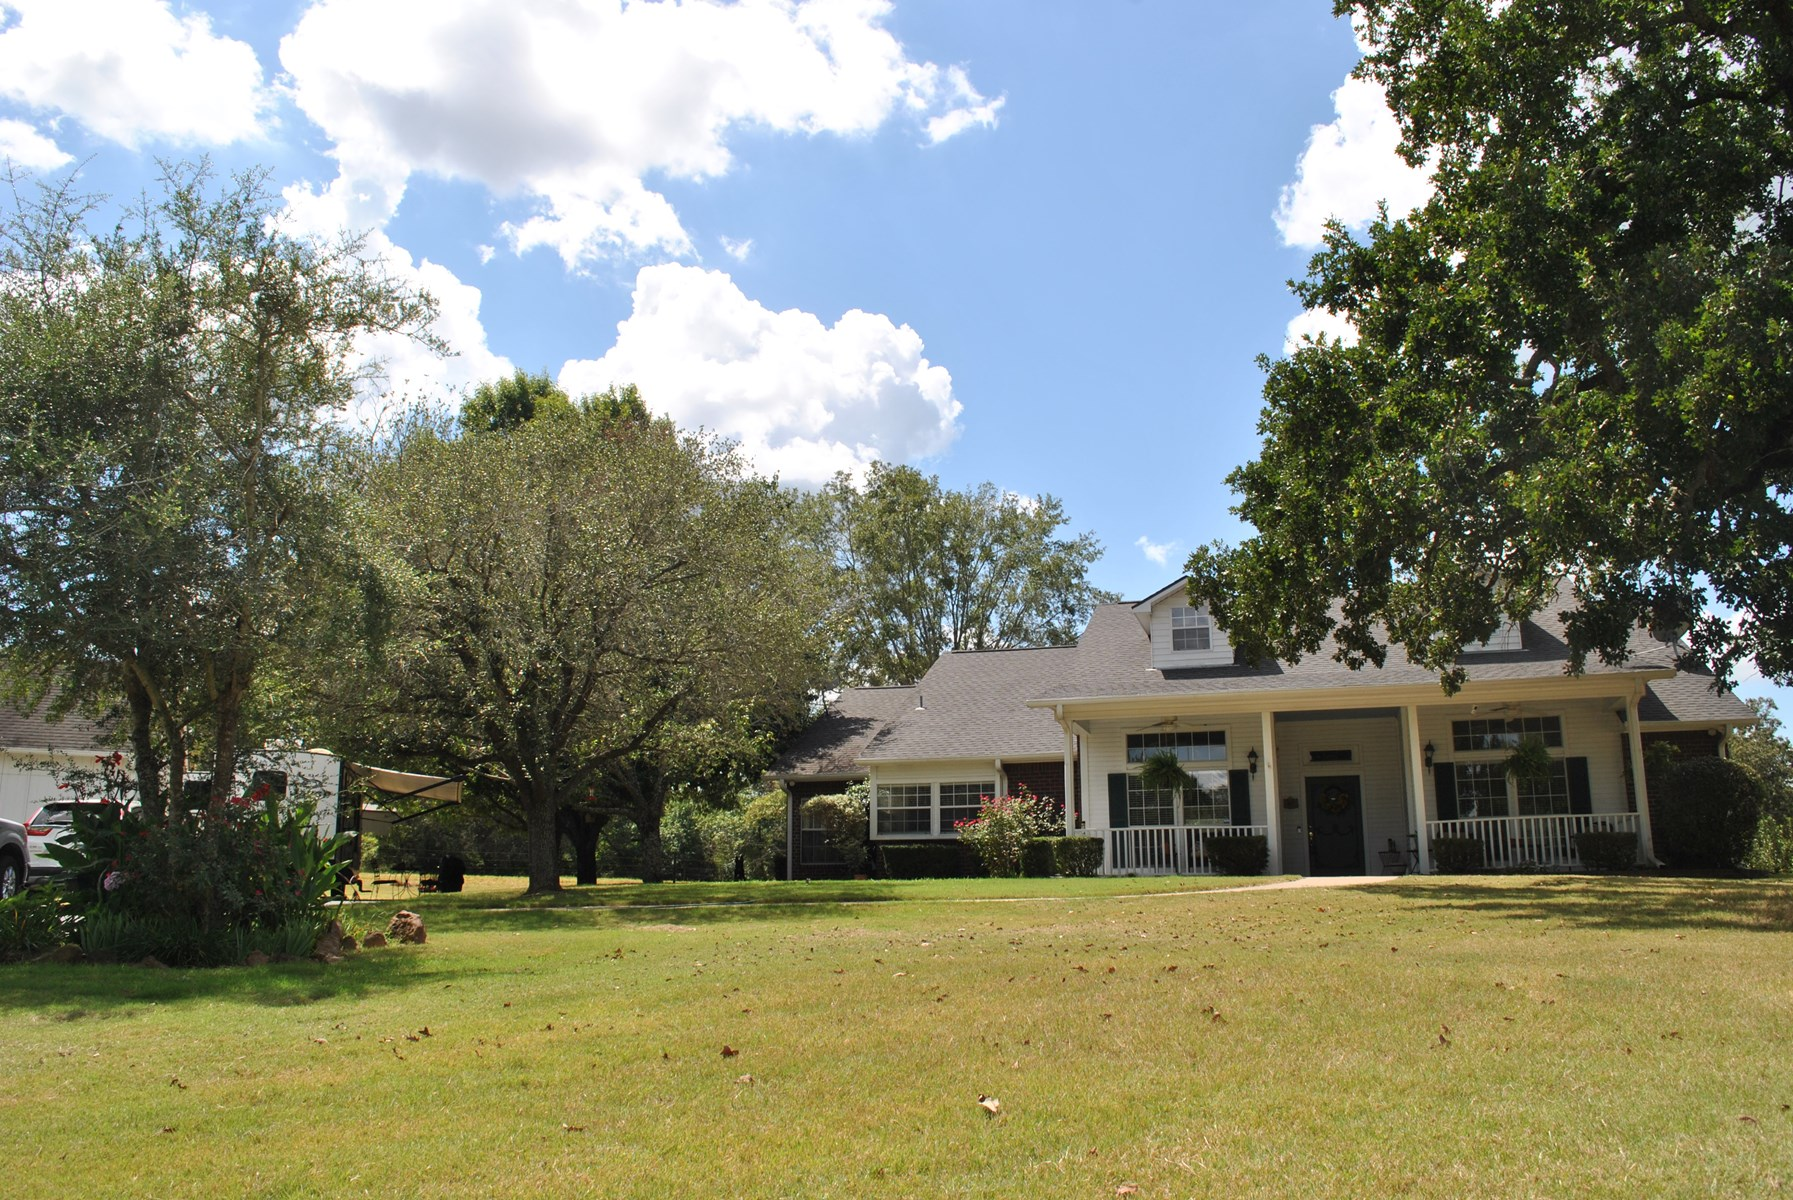 Country Home For Sale, Smith County Lindale Texas, Acreage